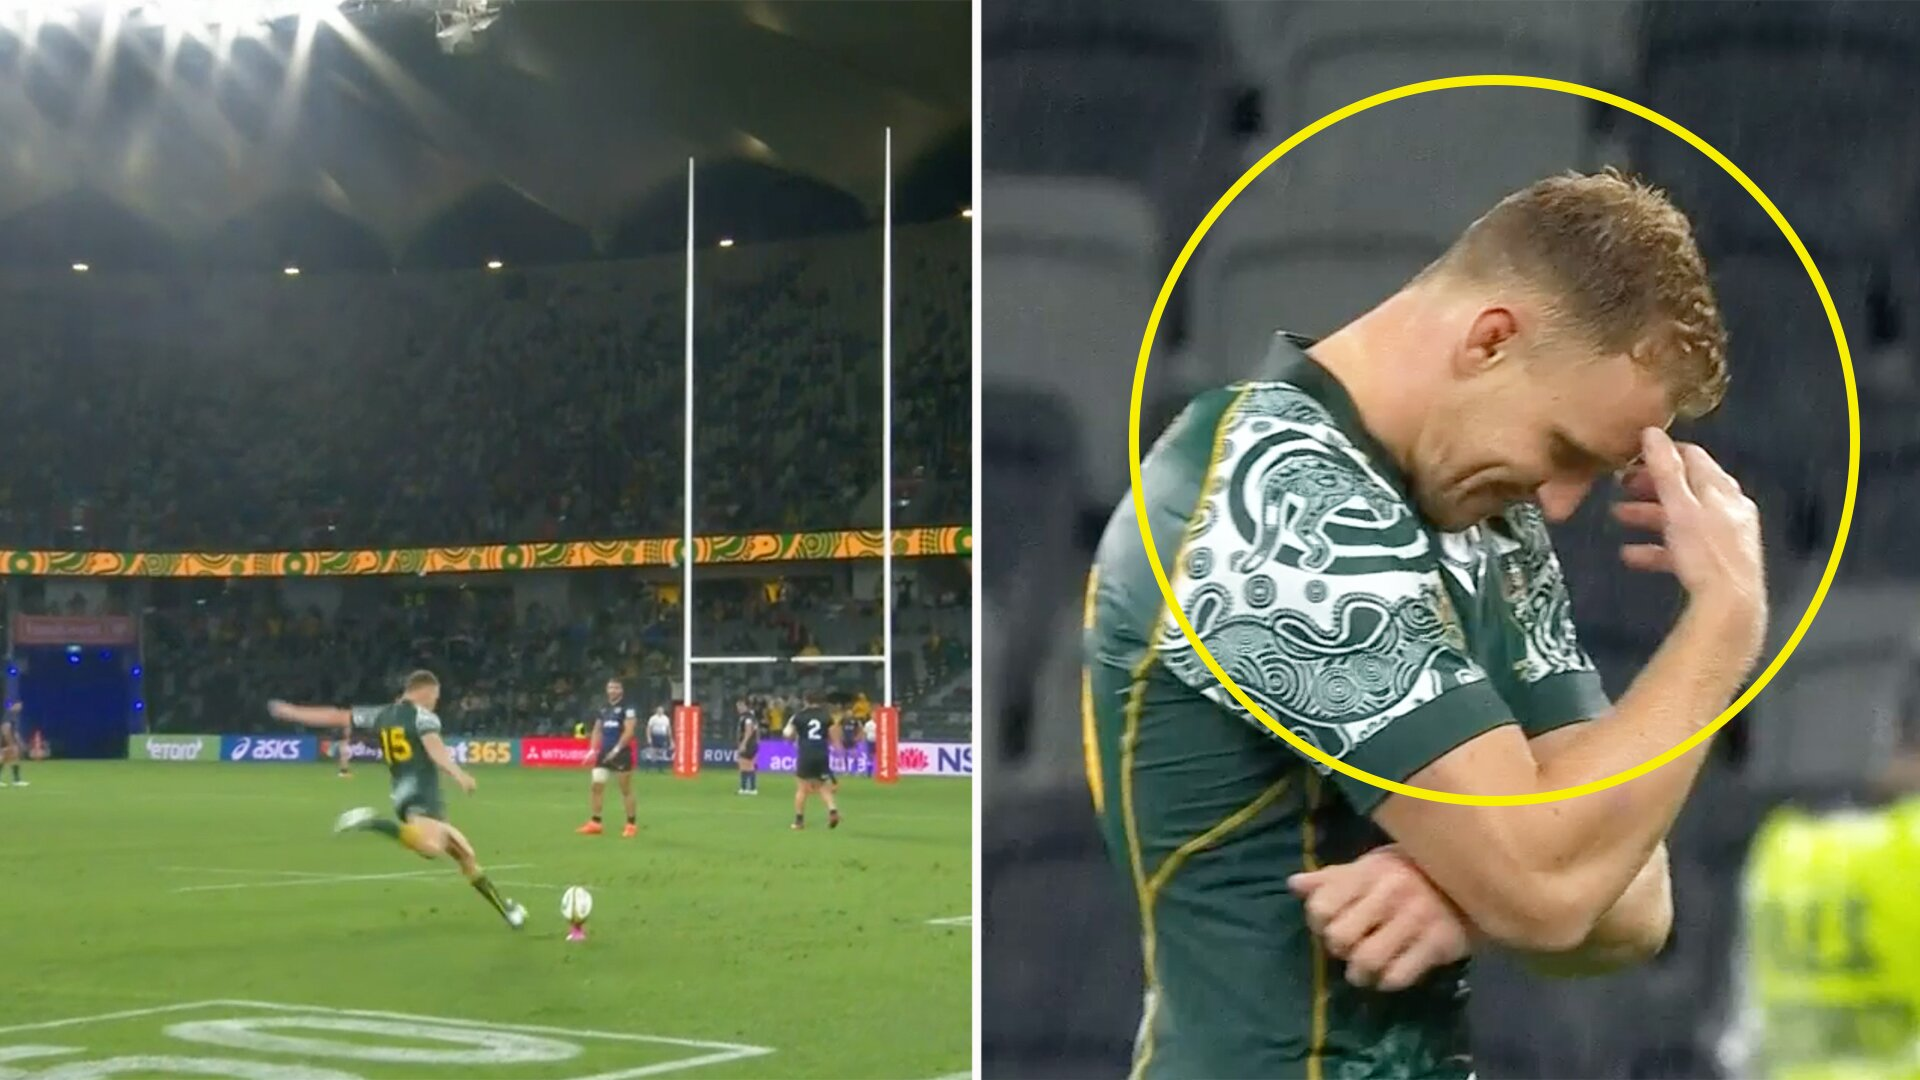 Reece Hodge's reaction to missing match winning kick against Argentina has everyone talking on social media